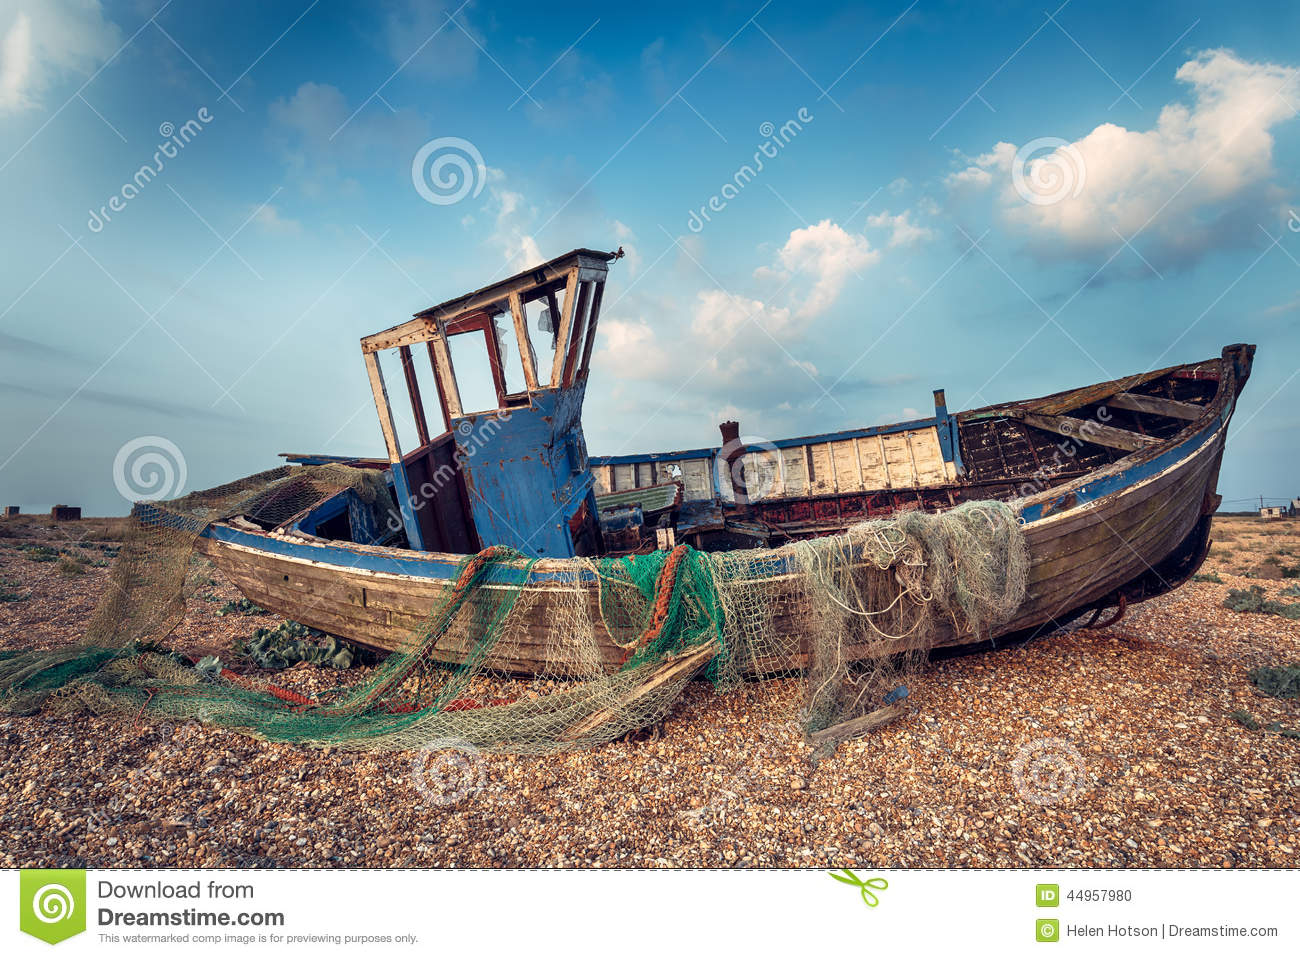 Old wooden fishing boat washed up on a shingle beach.